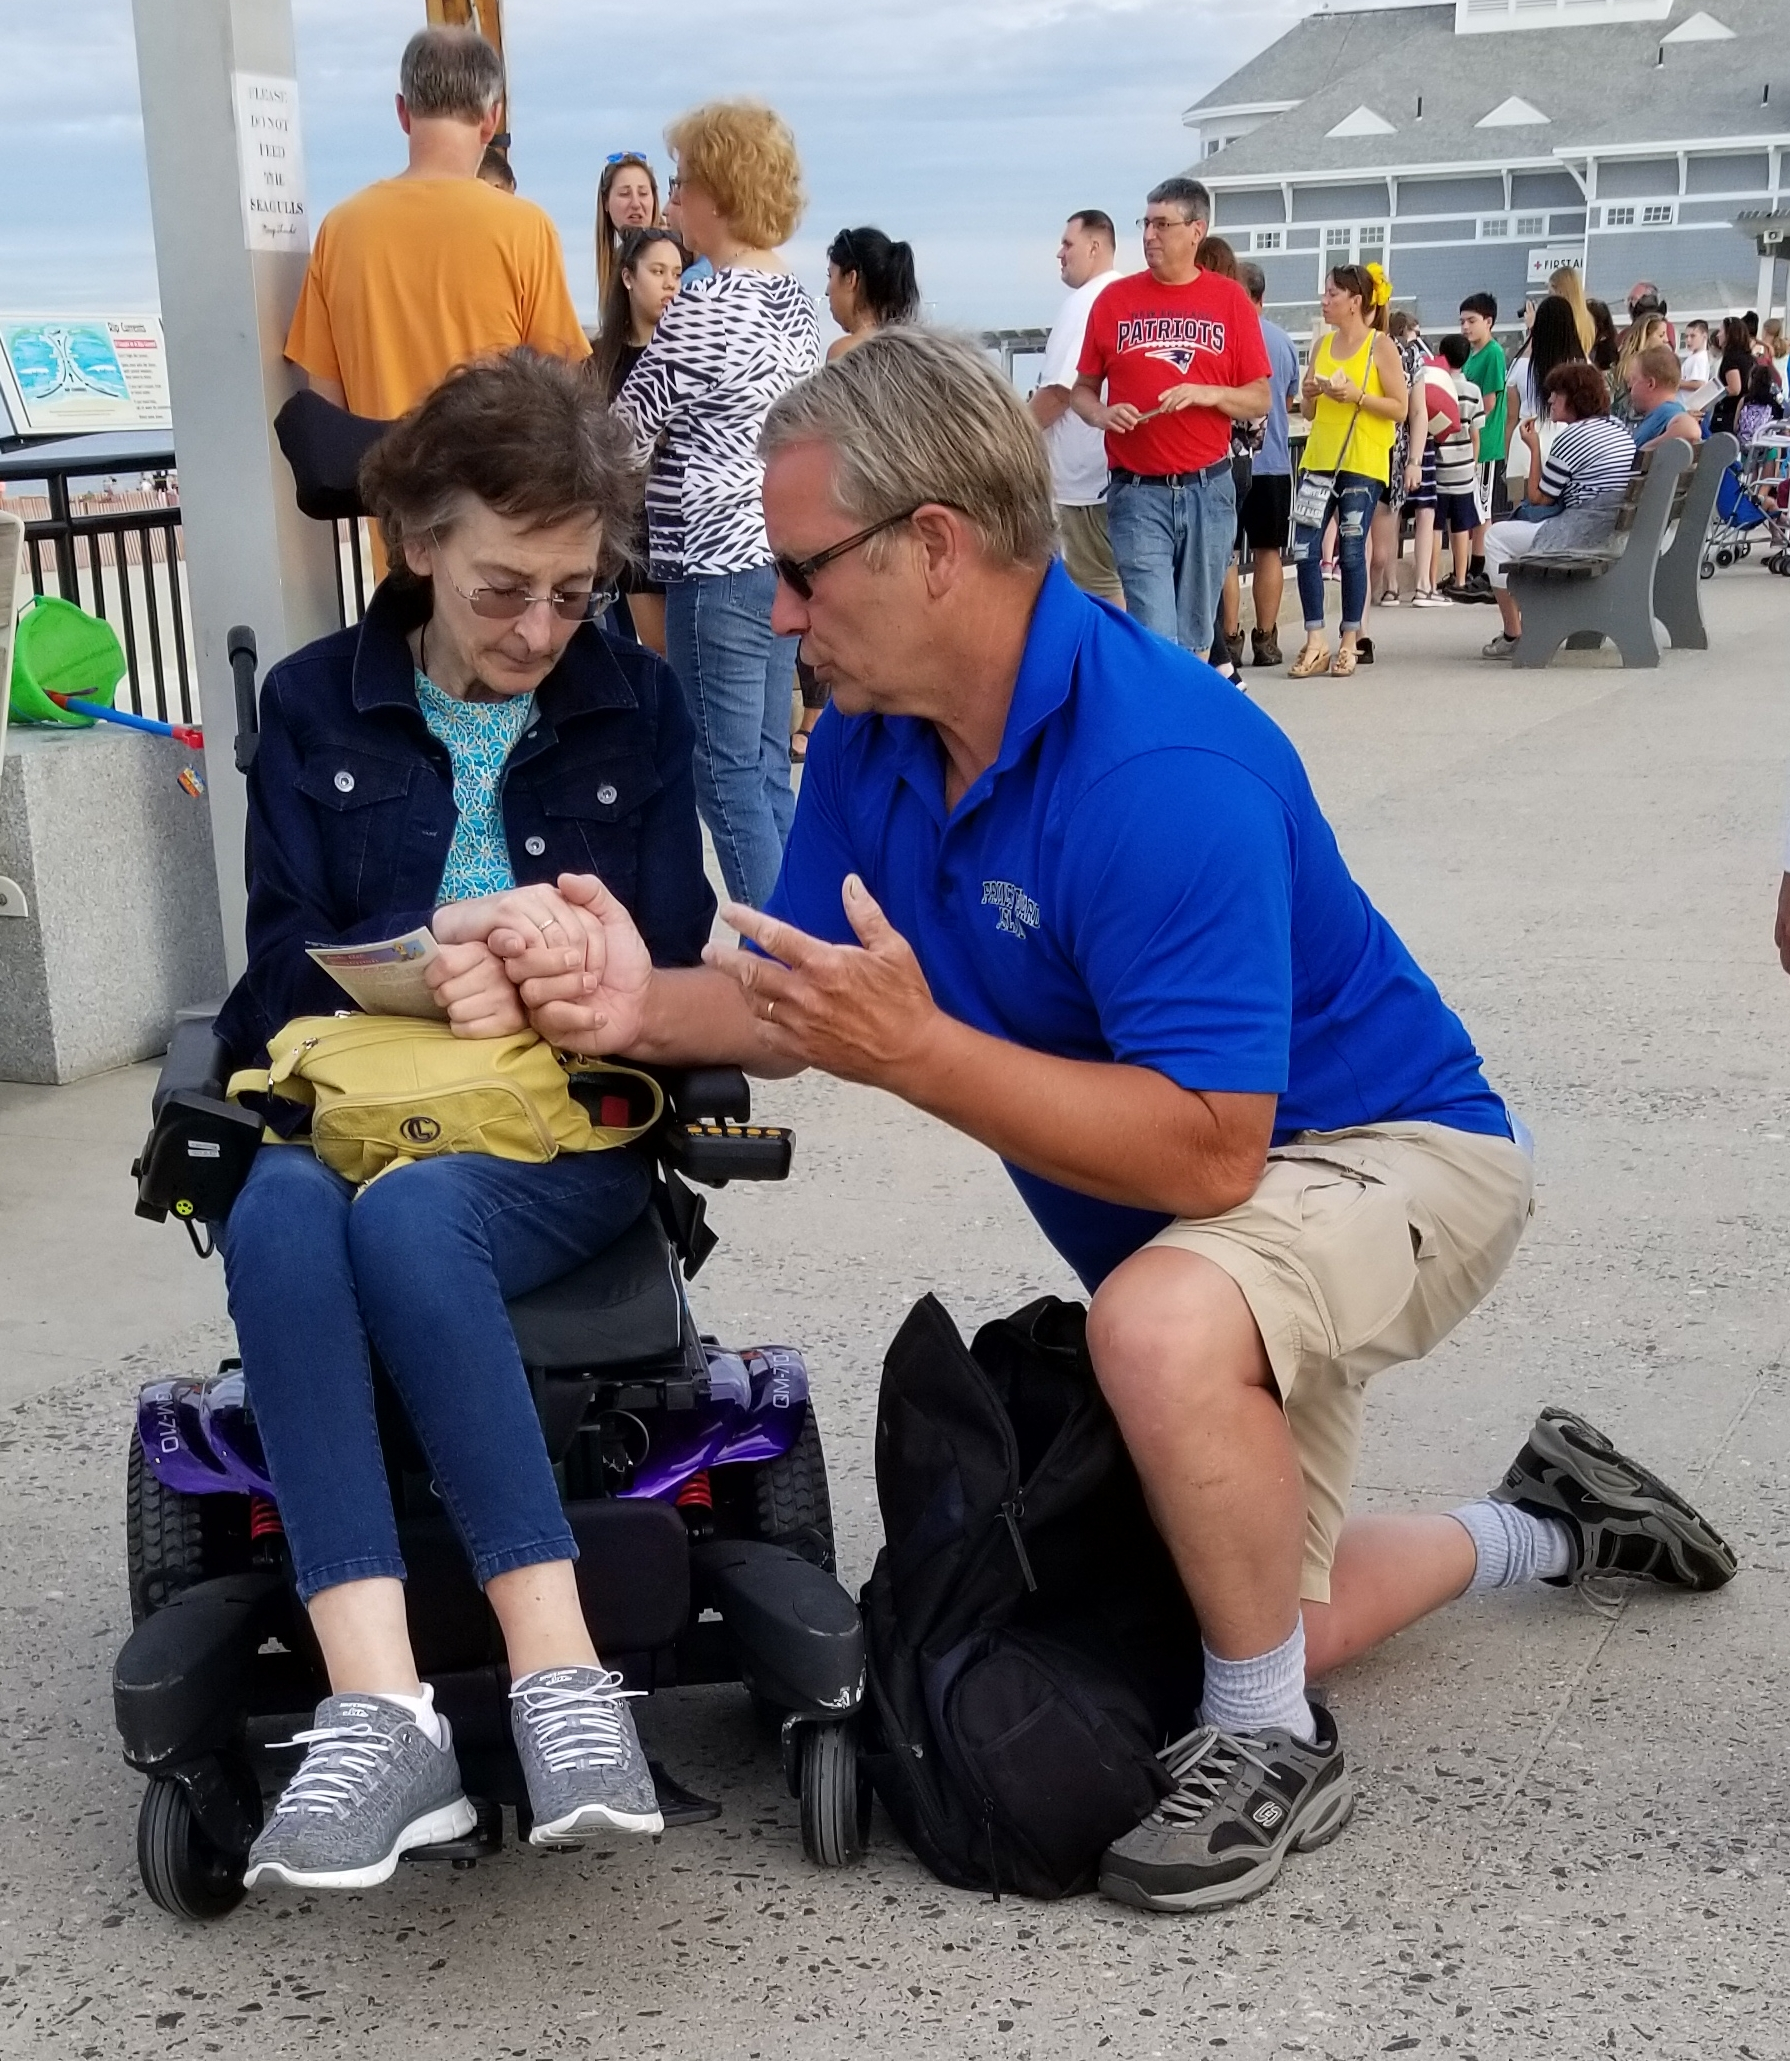 After Chloe was done explaining the gospel with Amy, Ted, one of our volunteers, spoke with Amy for some time, explaining the great news. Amy made a profession of faith right there on the beach! Please pray that Amy will be the seed that fell into good soil and bore much fruit.